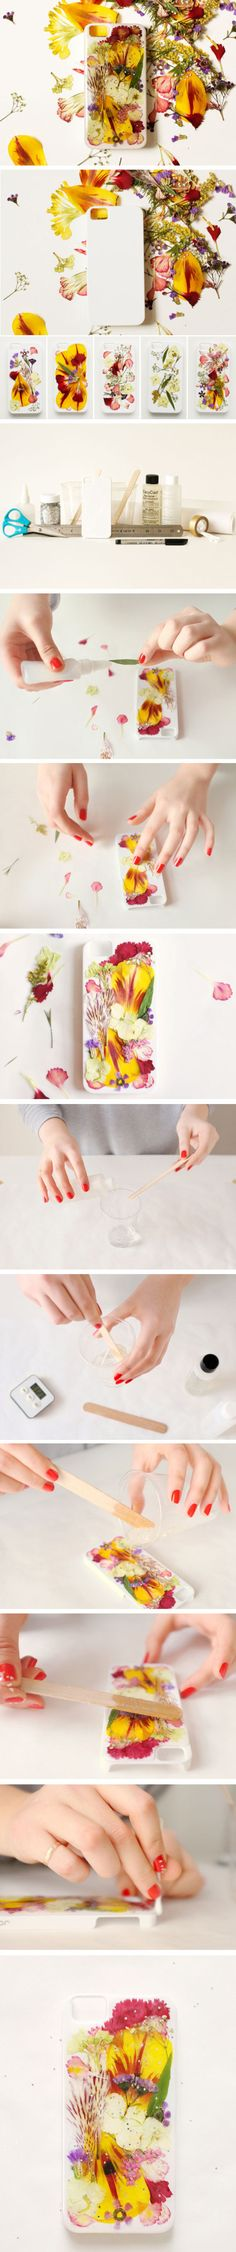 diy dried phone cases diy phone cases cell phone covers cellphone case ...